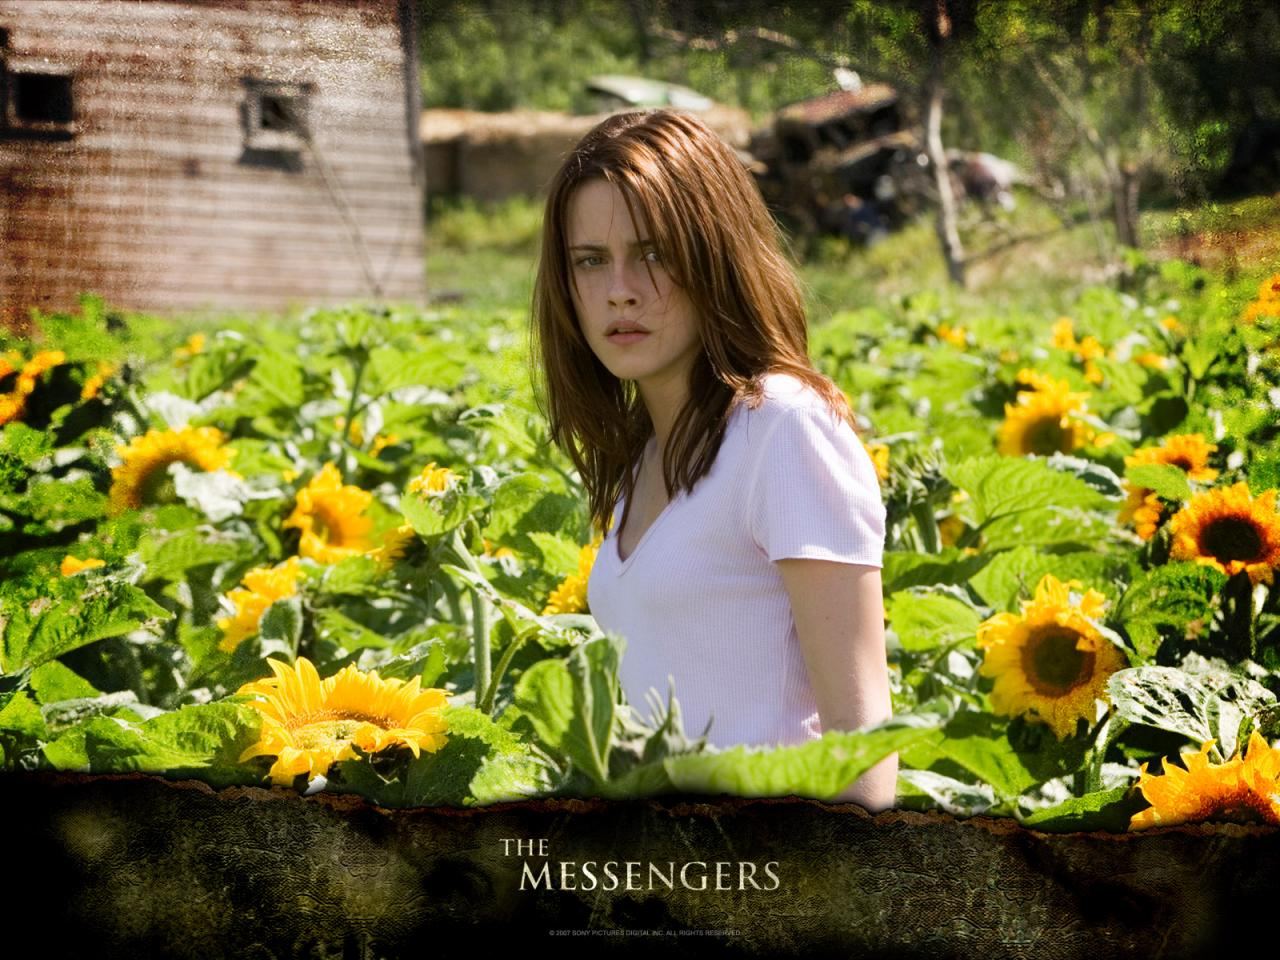 Wallpaper Kristen Stewart The Messengers tournesol Cinema Video